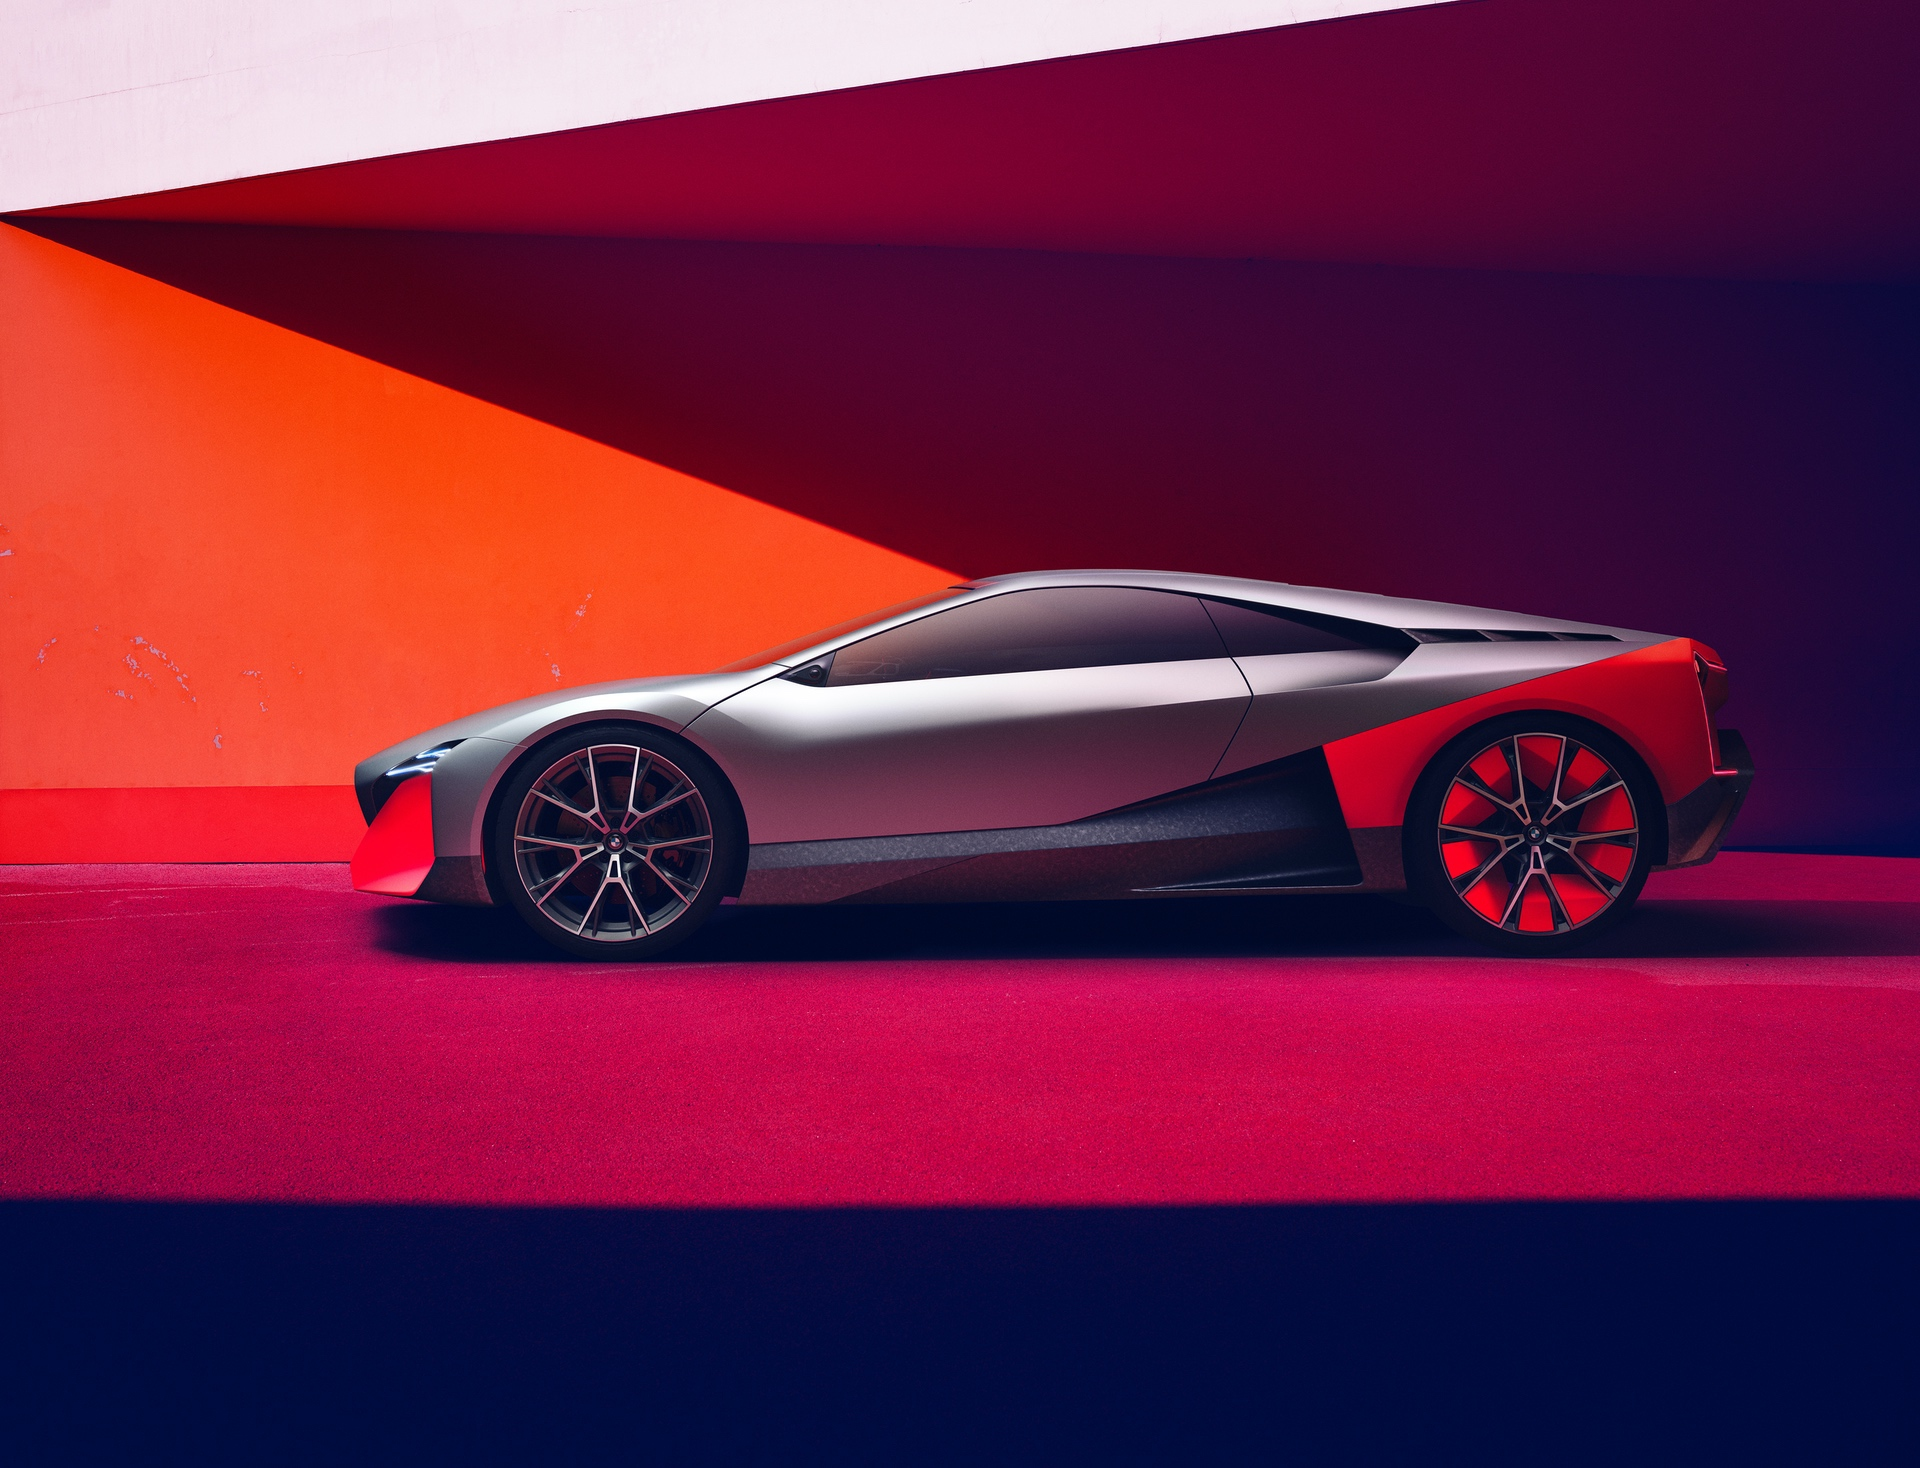 WORLD PREMIERE: The Future of Performance — The BMW Vision M Next